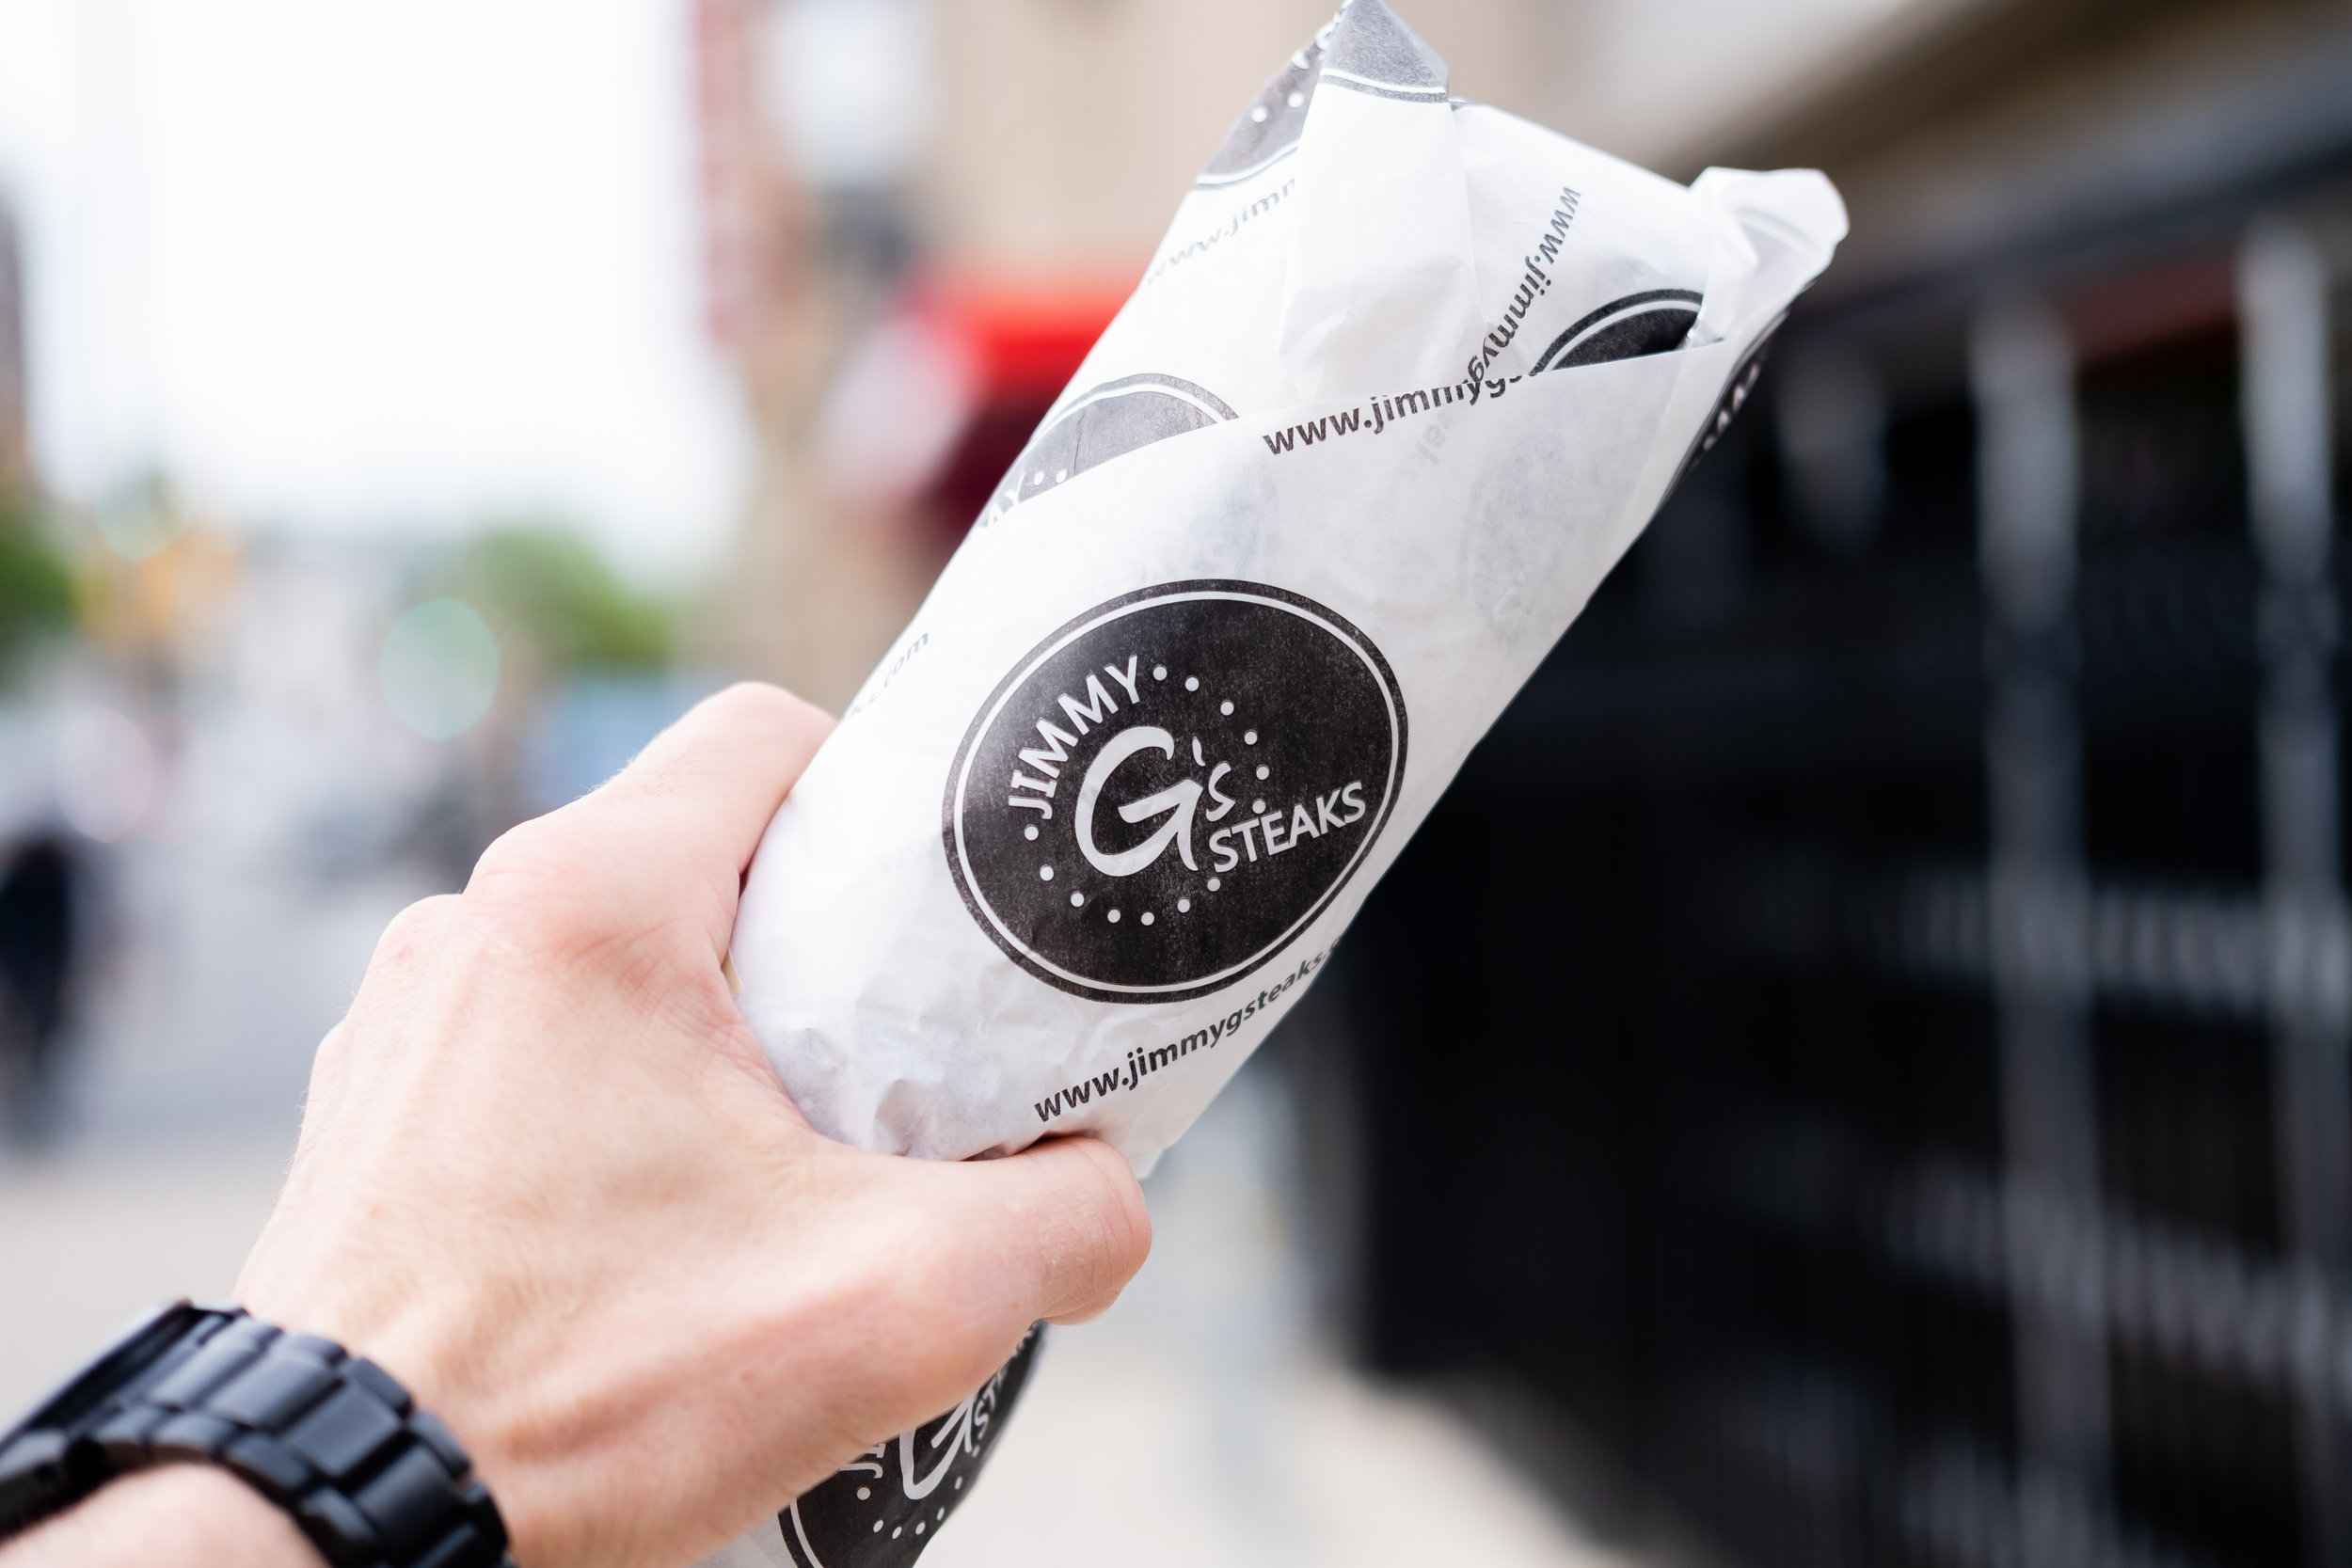 2019_JIMMY GS_CHEESESTEAKS_THE PHILLY CHECKLIST-5.jpg